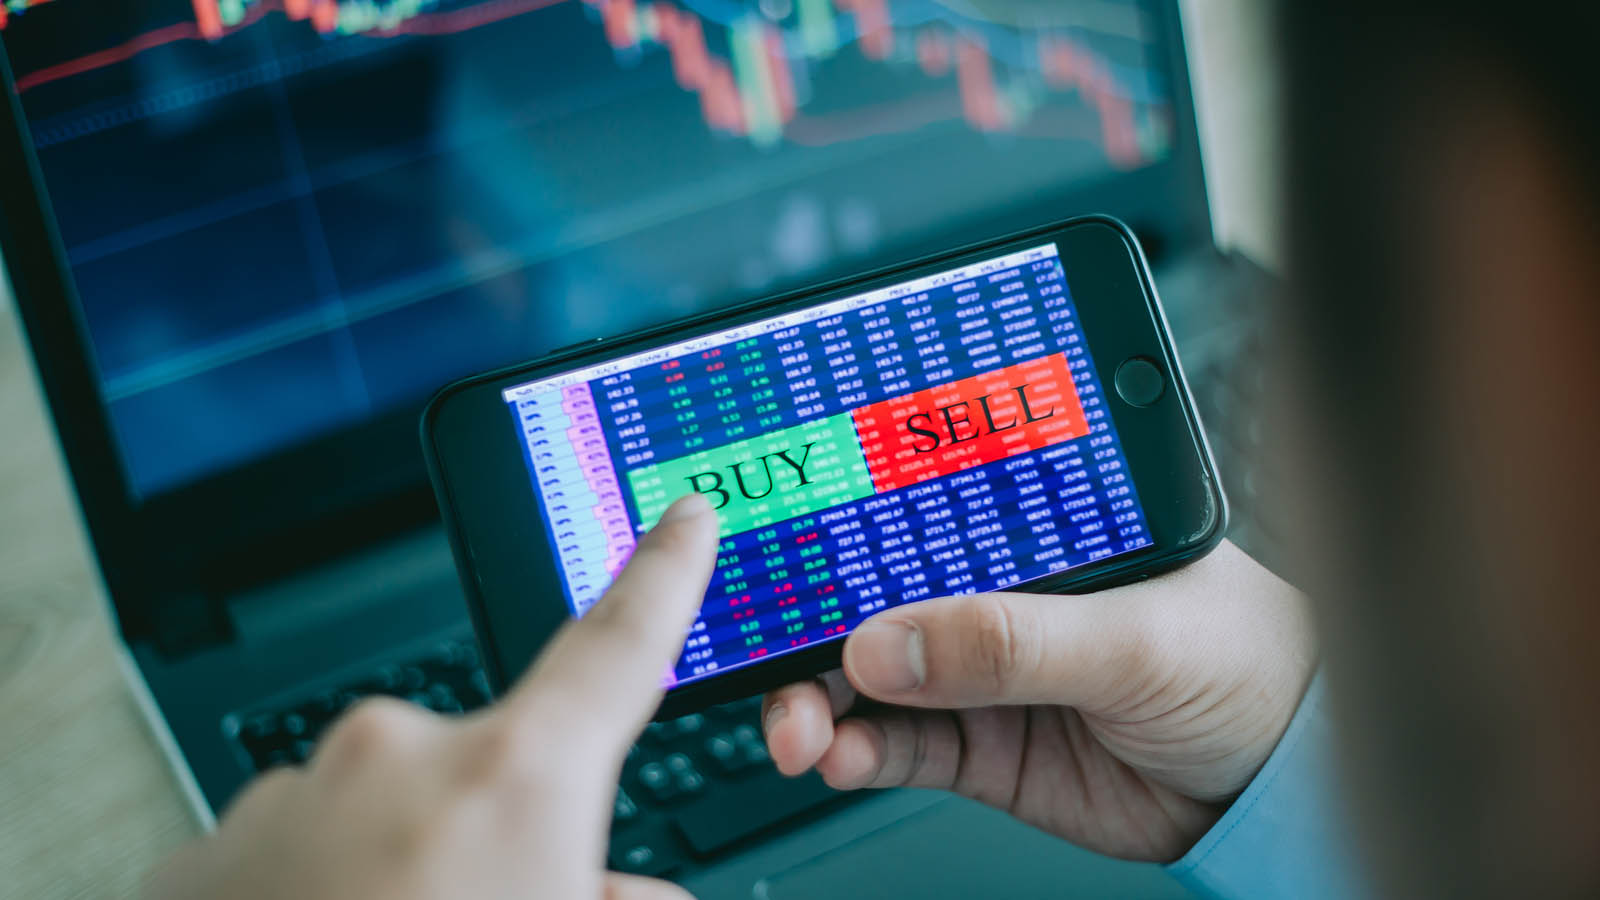 6 Best Consumer Services Stocks to Buy as the Economy Rebounds - Investorplace.com